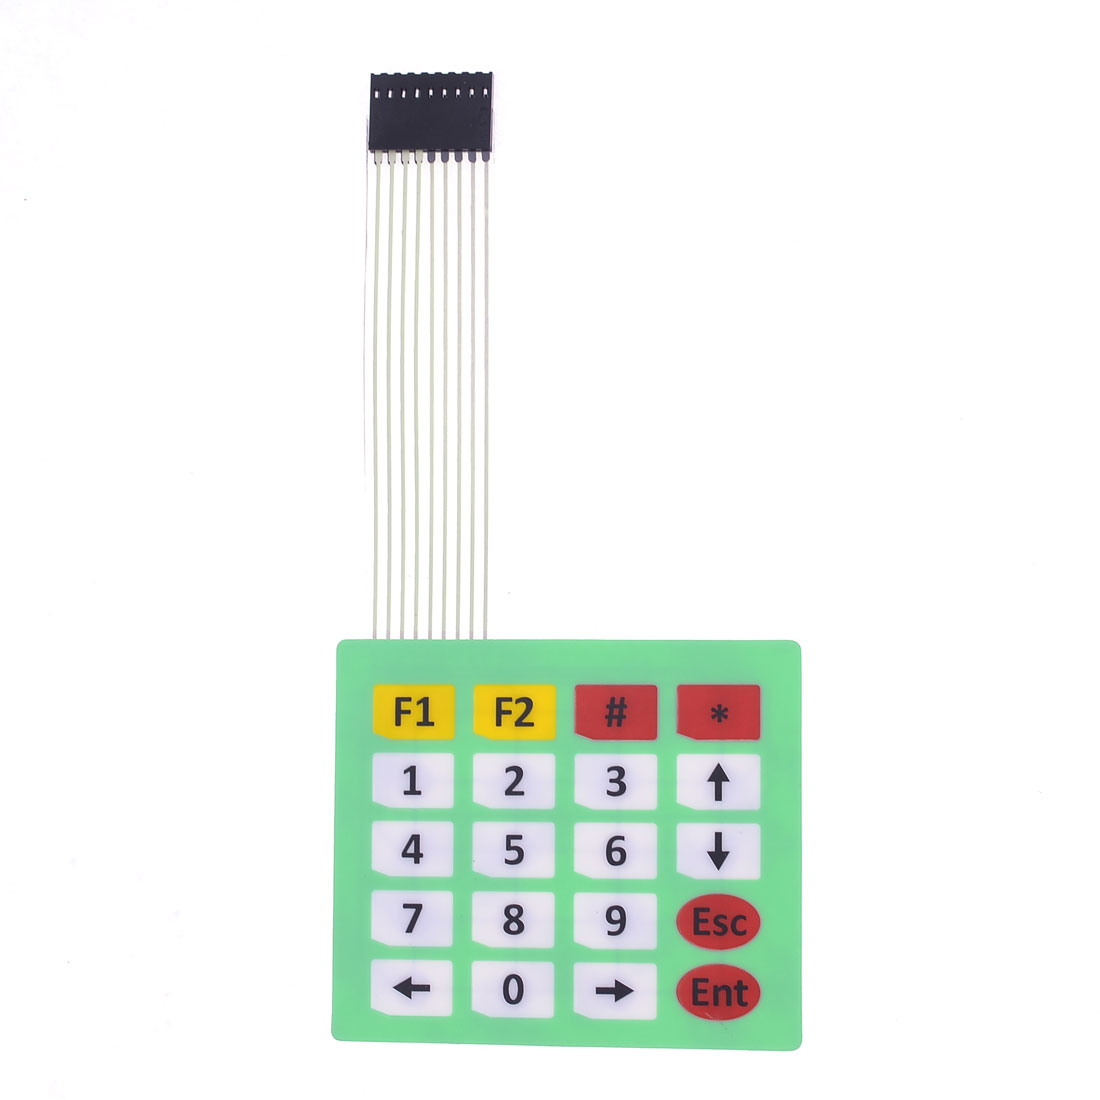 DC 12V 4 x 5 Matrix 20 Key Membrane Switch Keypad Keyboard 85 x 73 x 0.8mm